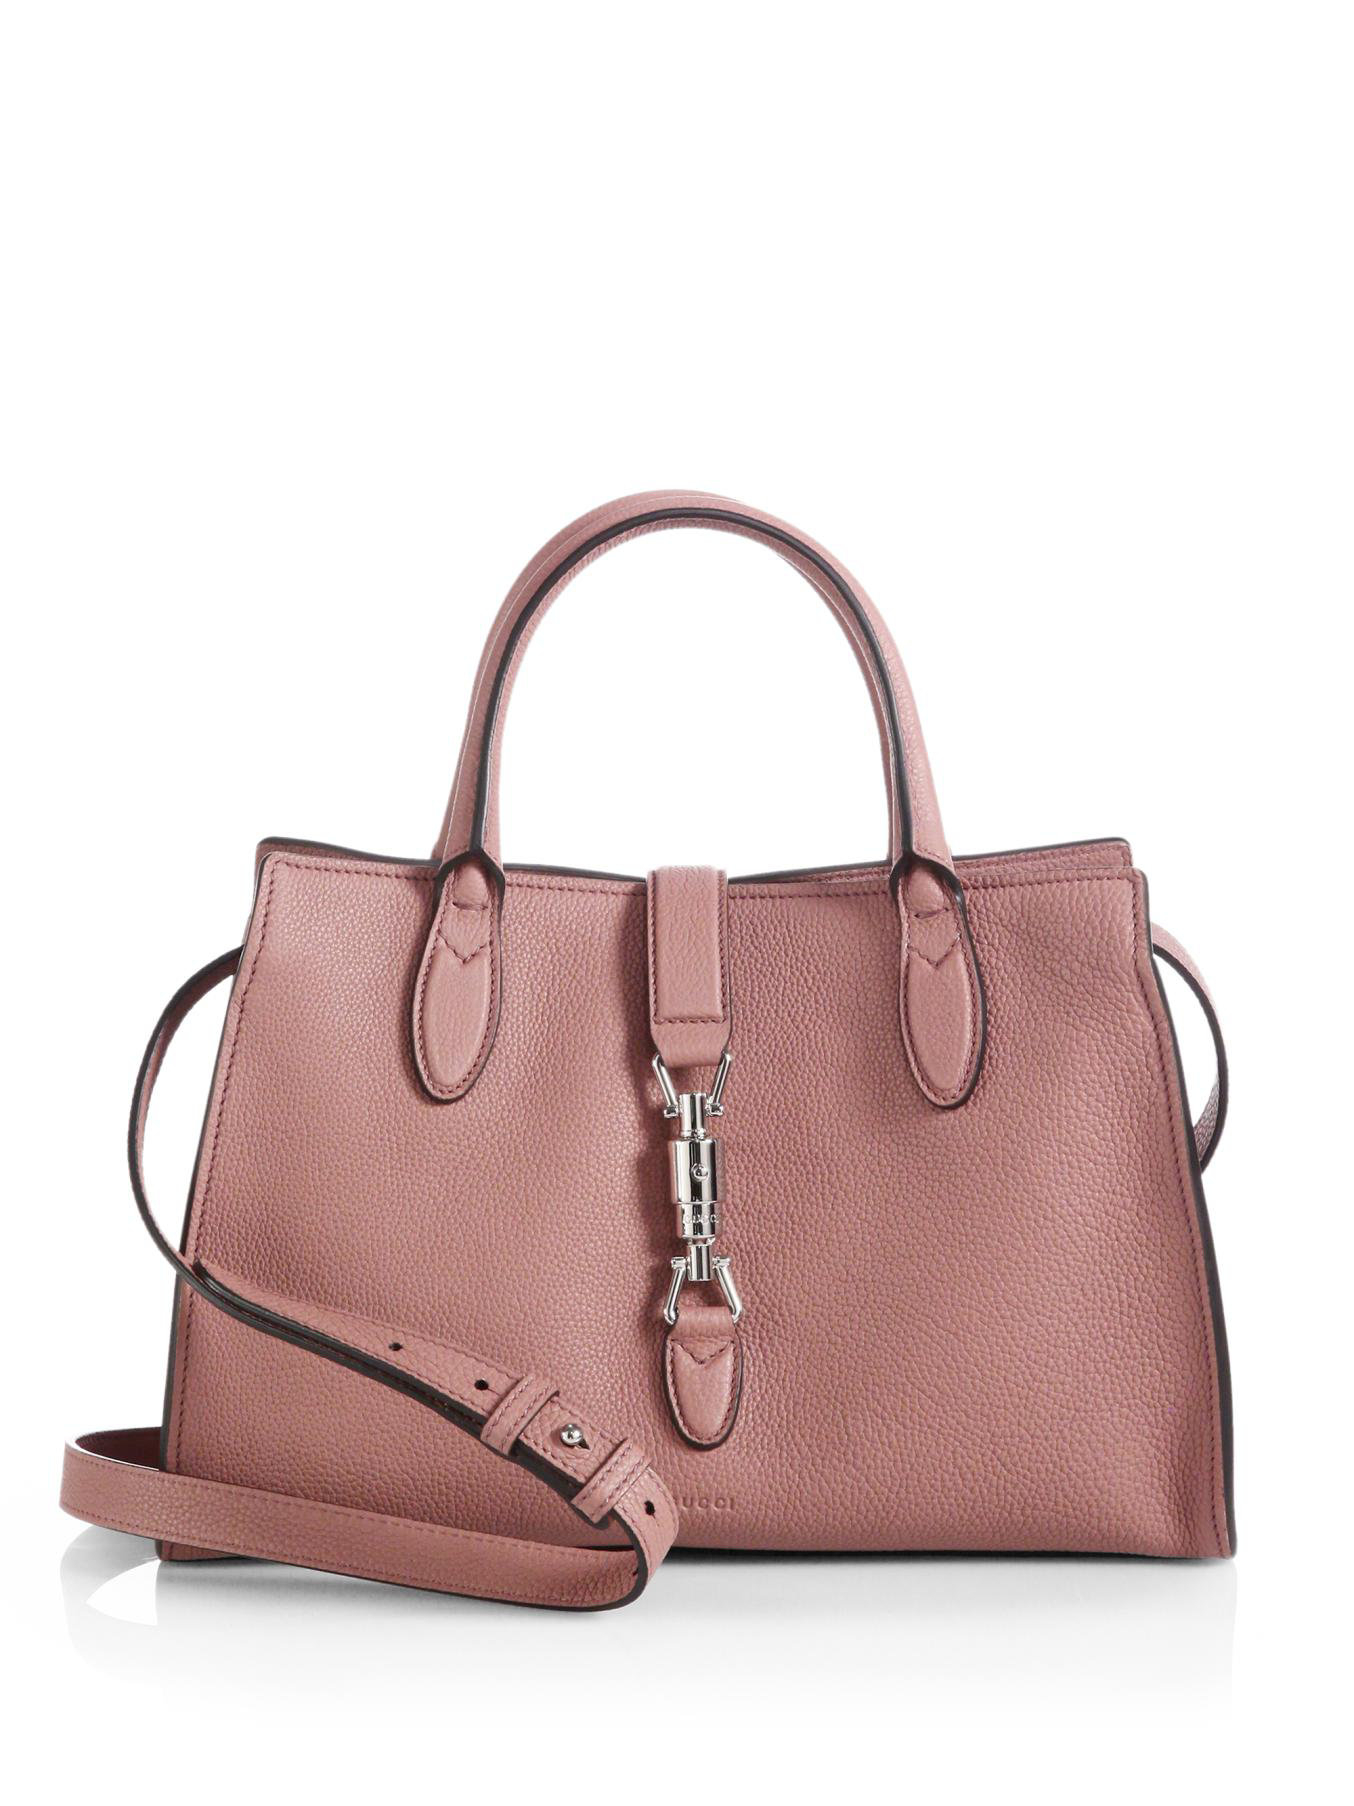 11873bd7dfa Gucci Jackie Soft Leather Top Handle Bag in Pink - Lyst